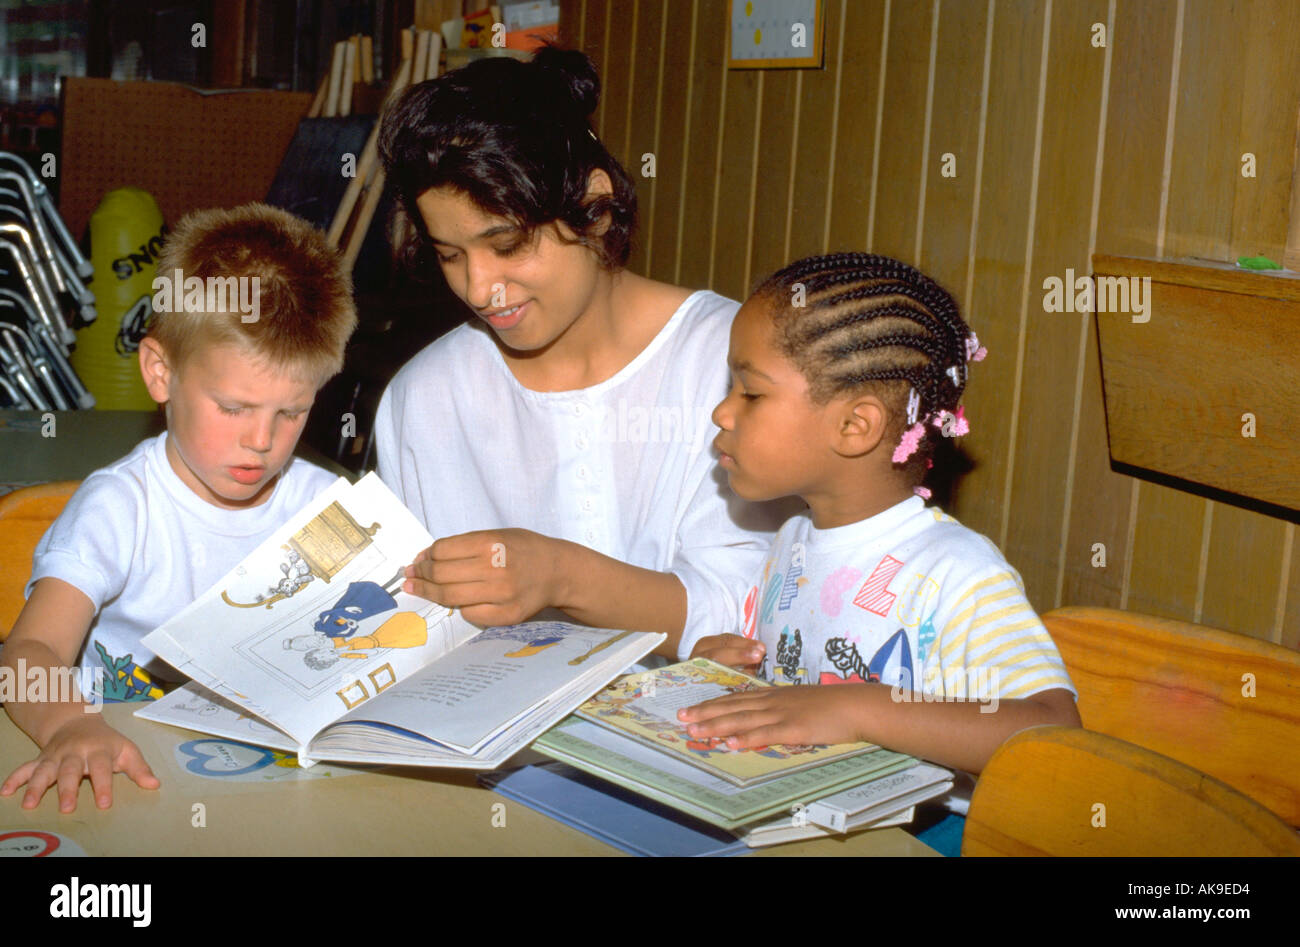 East Indian girl age 19 reading book with two children age 5. St Paul Minnesota USA Stock Photo